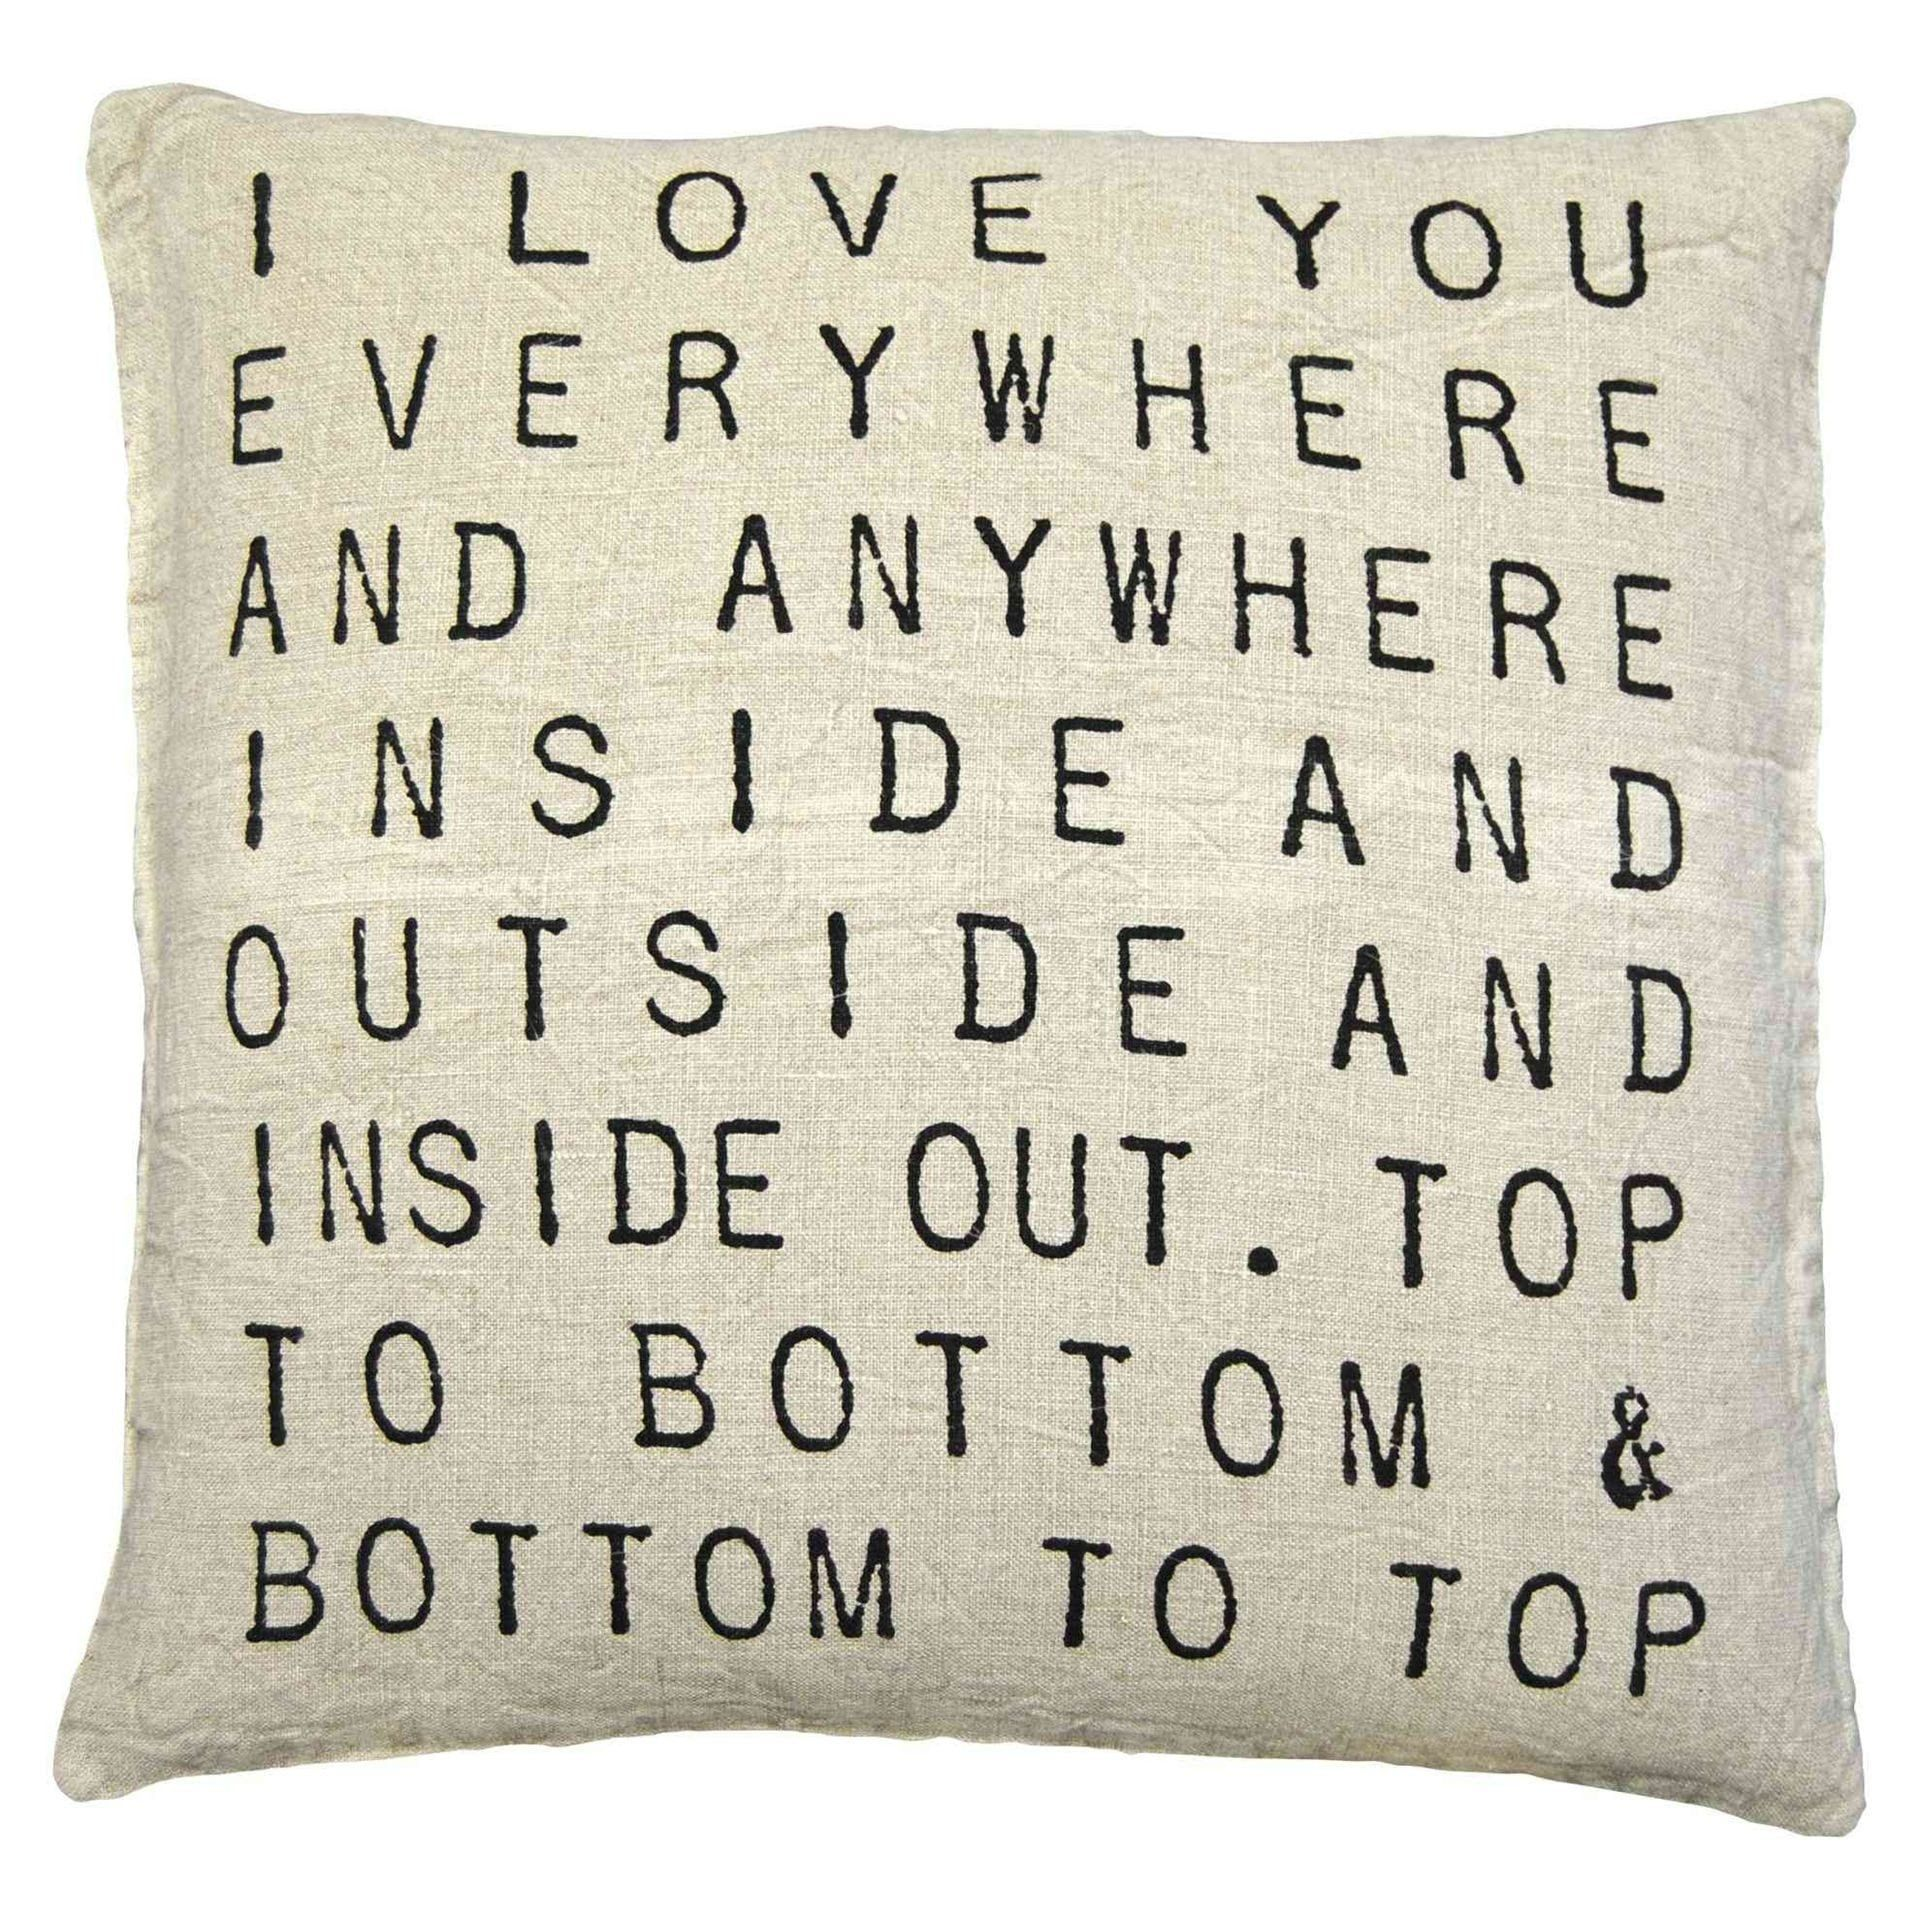 Home interior design quotation sugarboo designs i love you everywhere pillow  handmade home decor